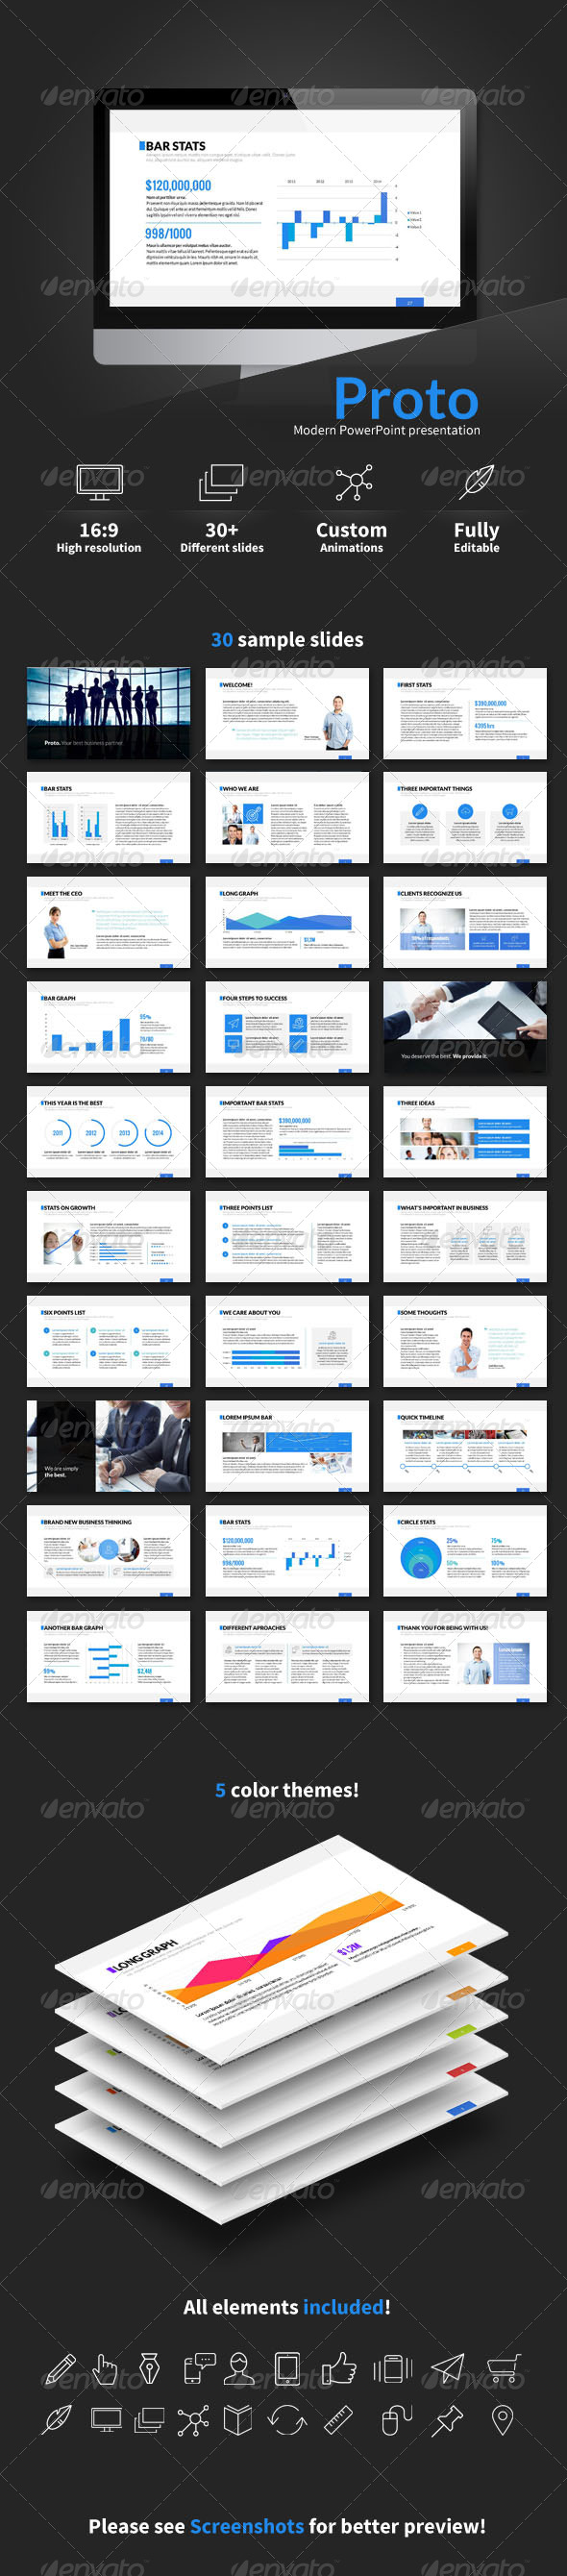 GraphicRiver Proto PowerPoint presentation 6991616